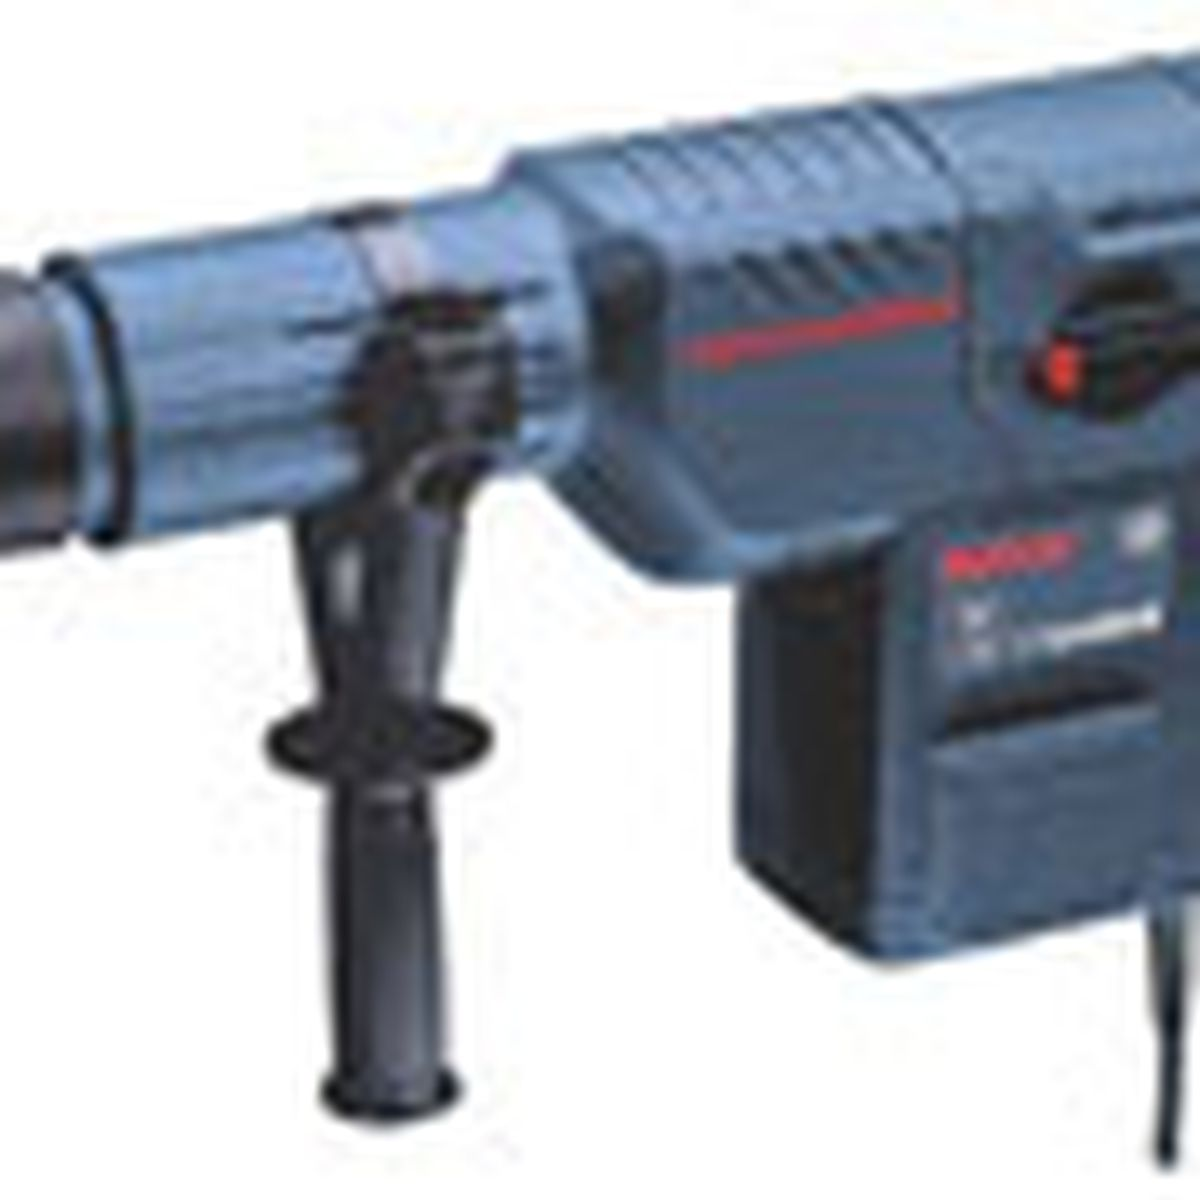 electric chipping hammer